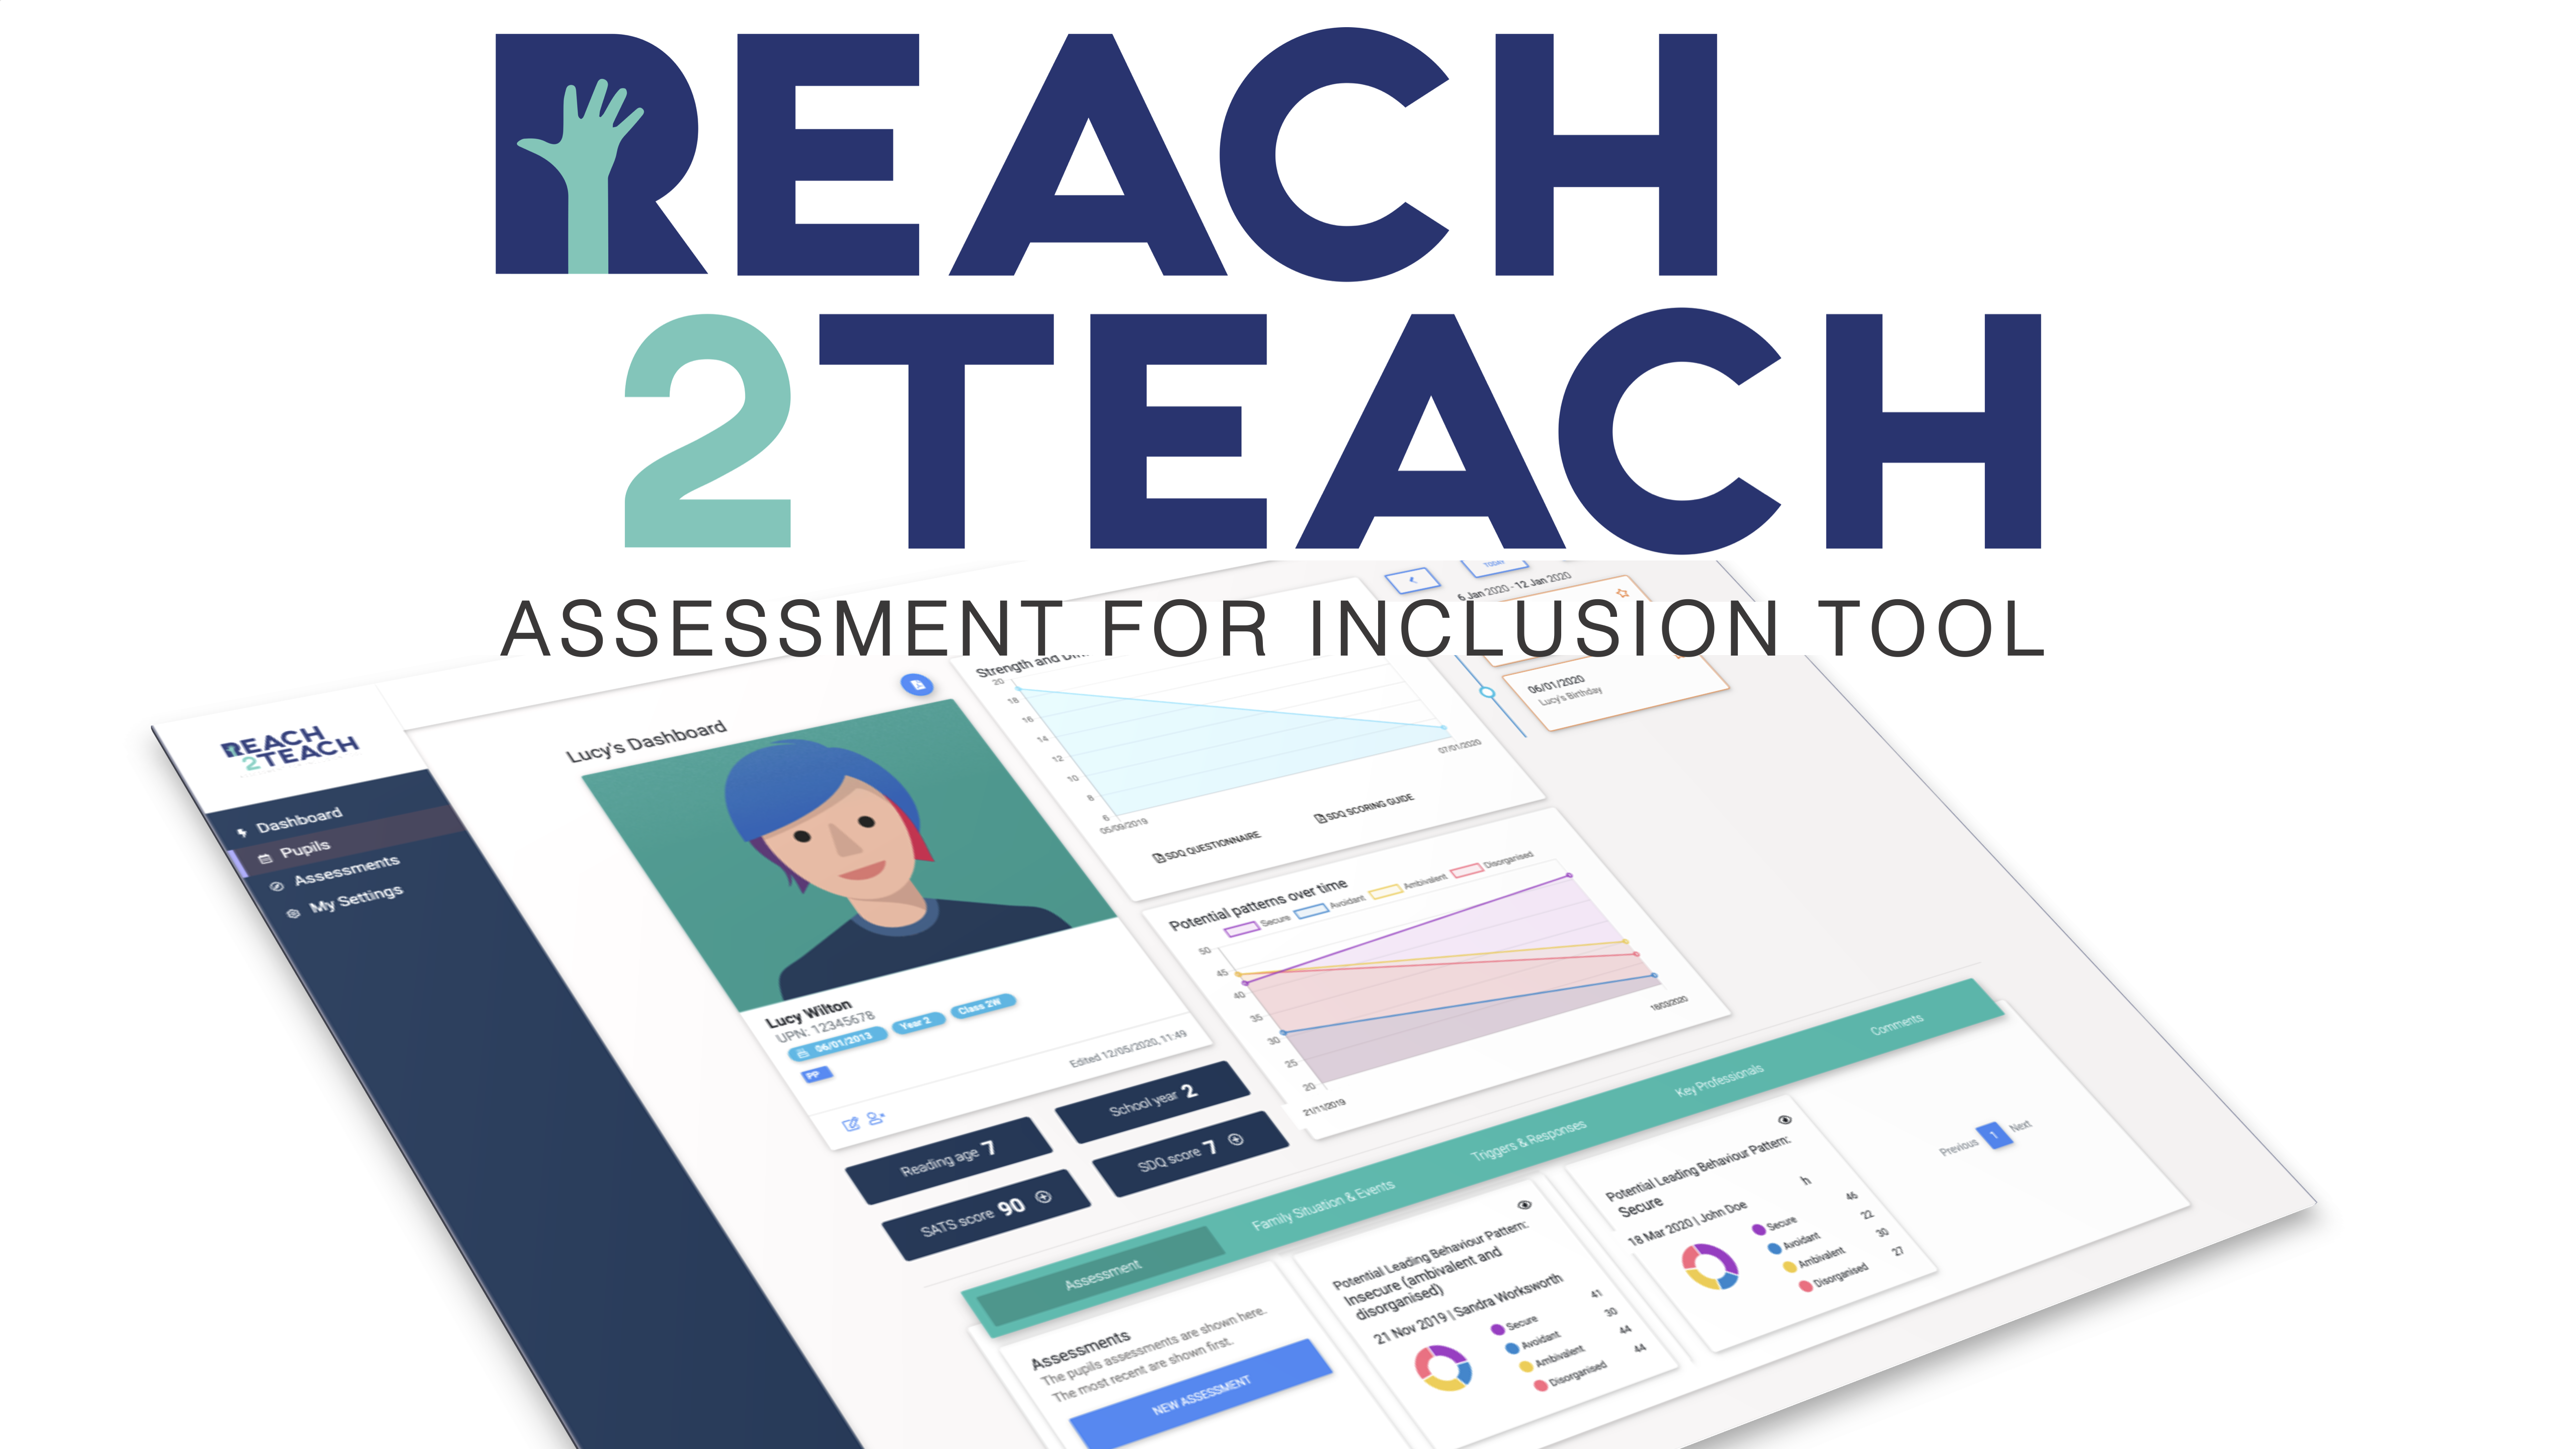 Reach2Teach: Assessment for Inclusion Tool (AFIT)